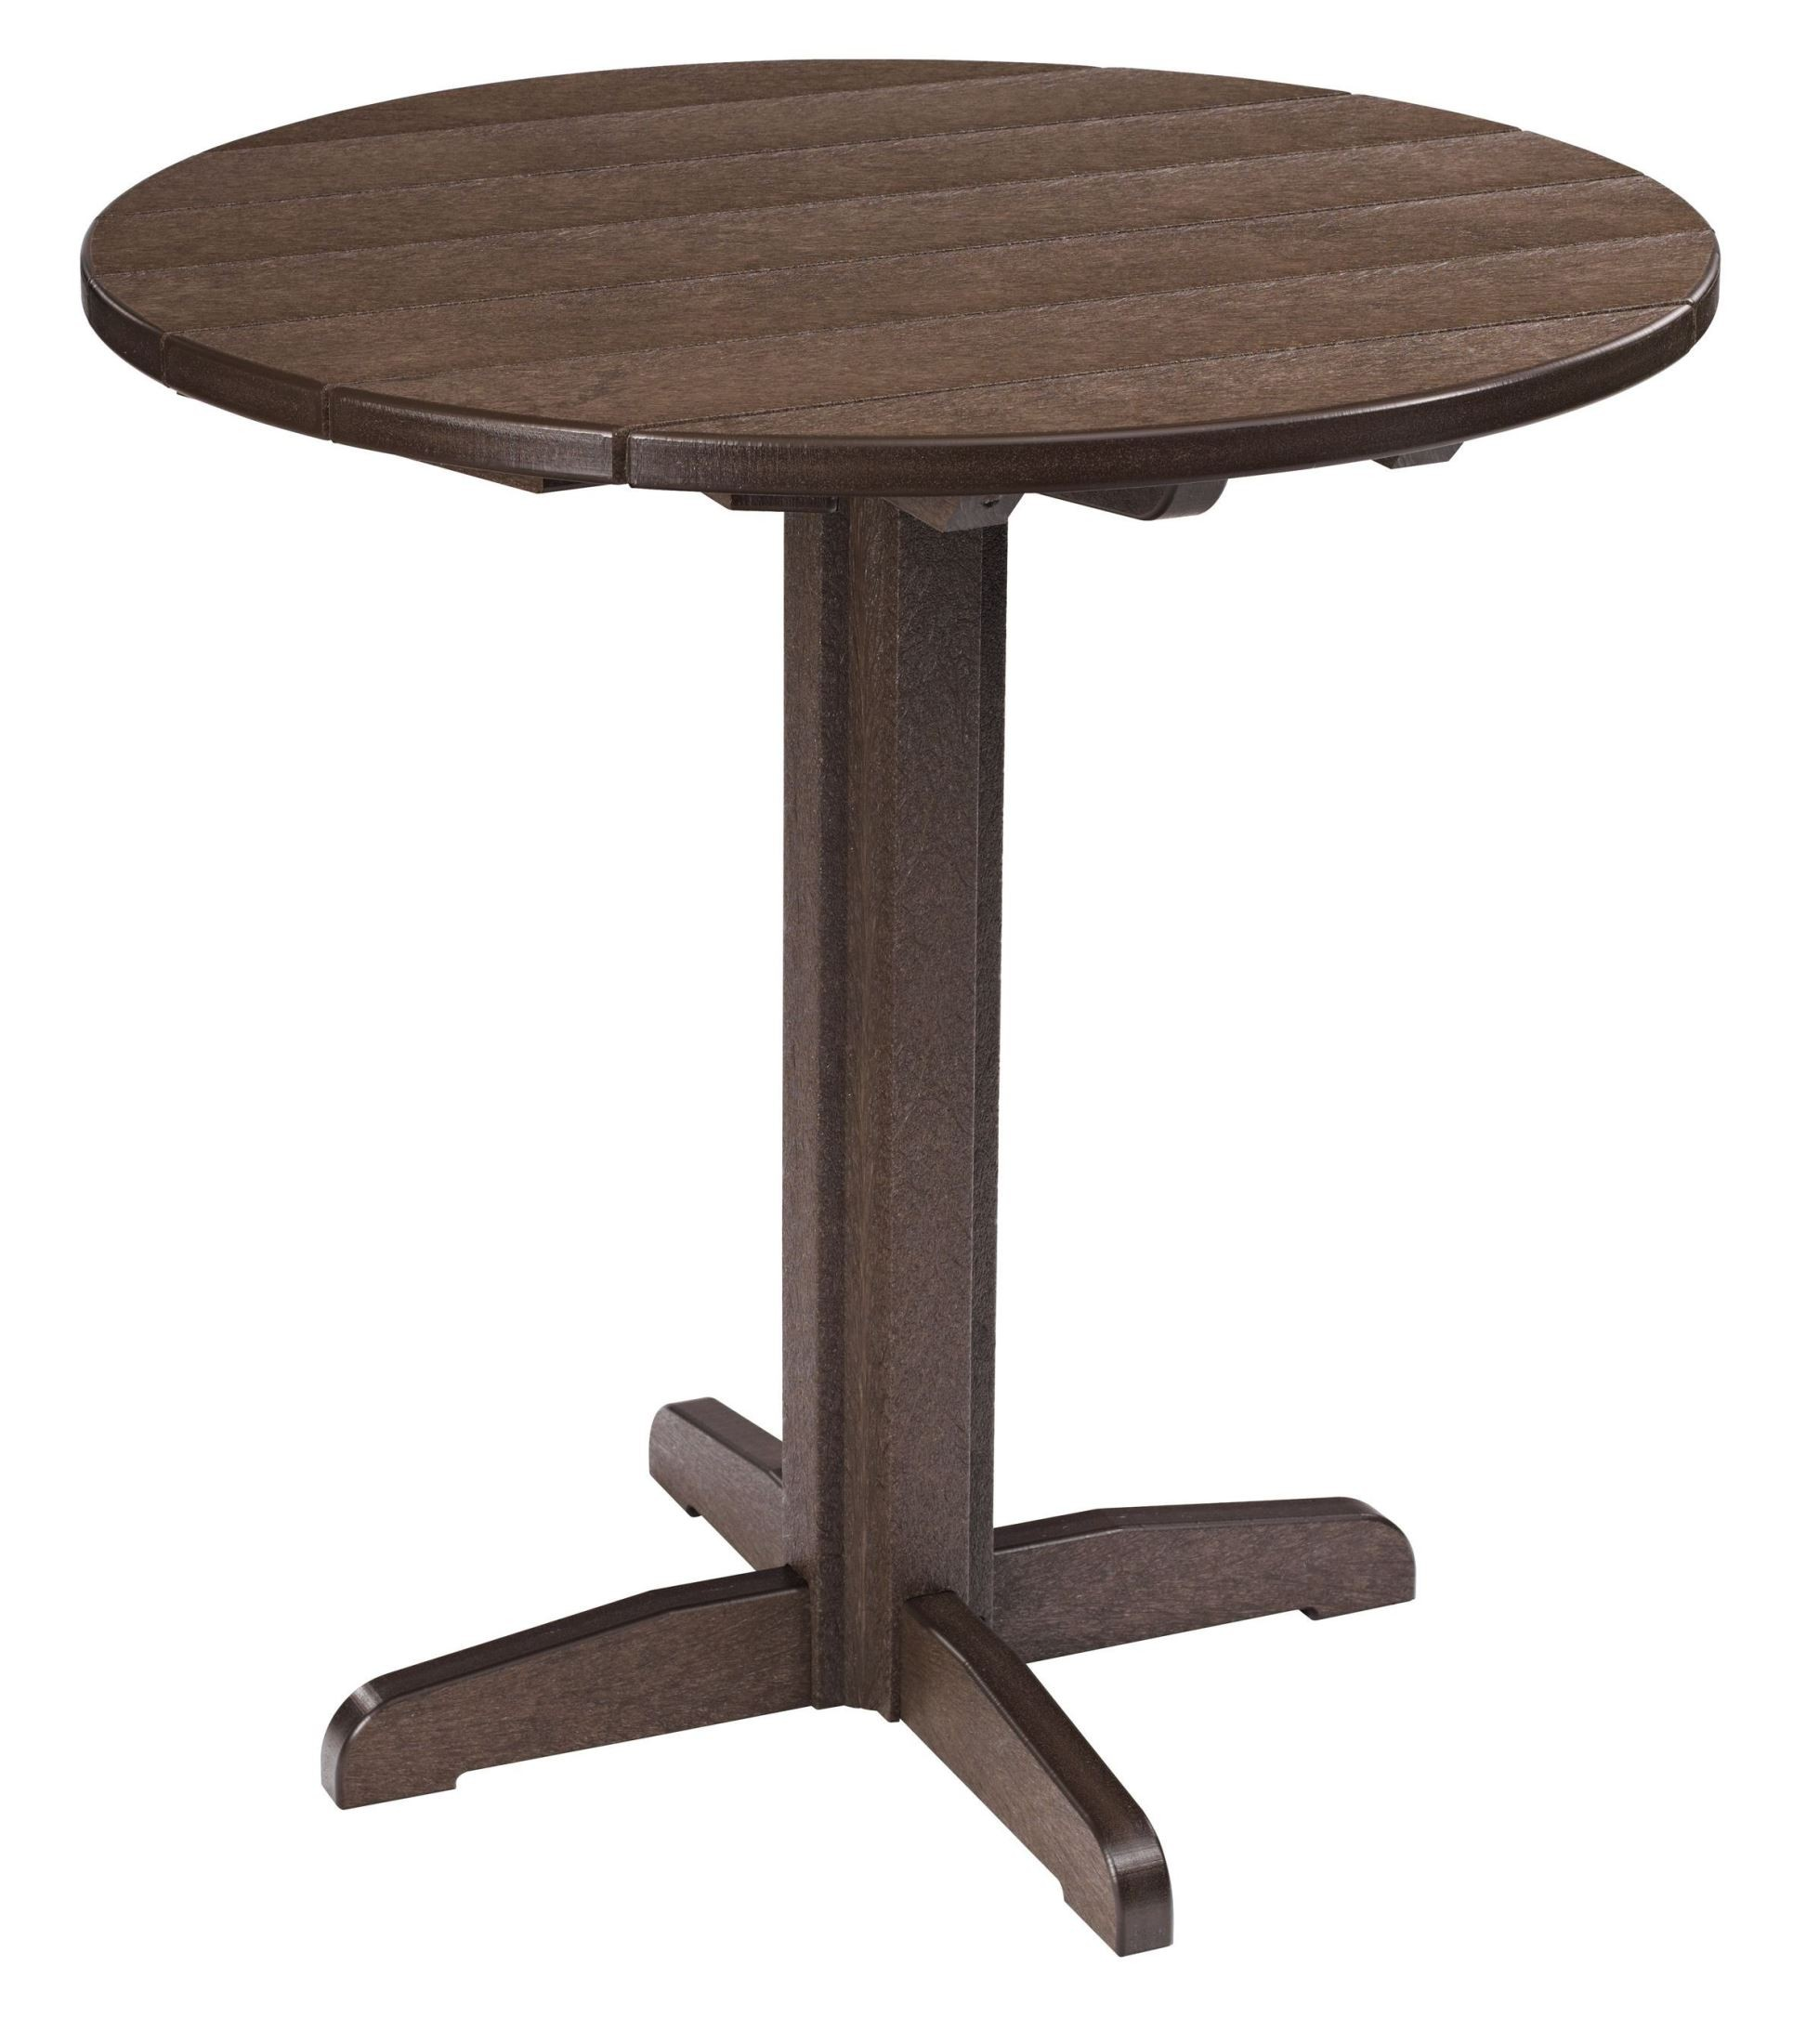 Generations chocolate 37 round pub height pedestal table for Table 6 to 16